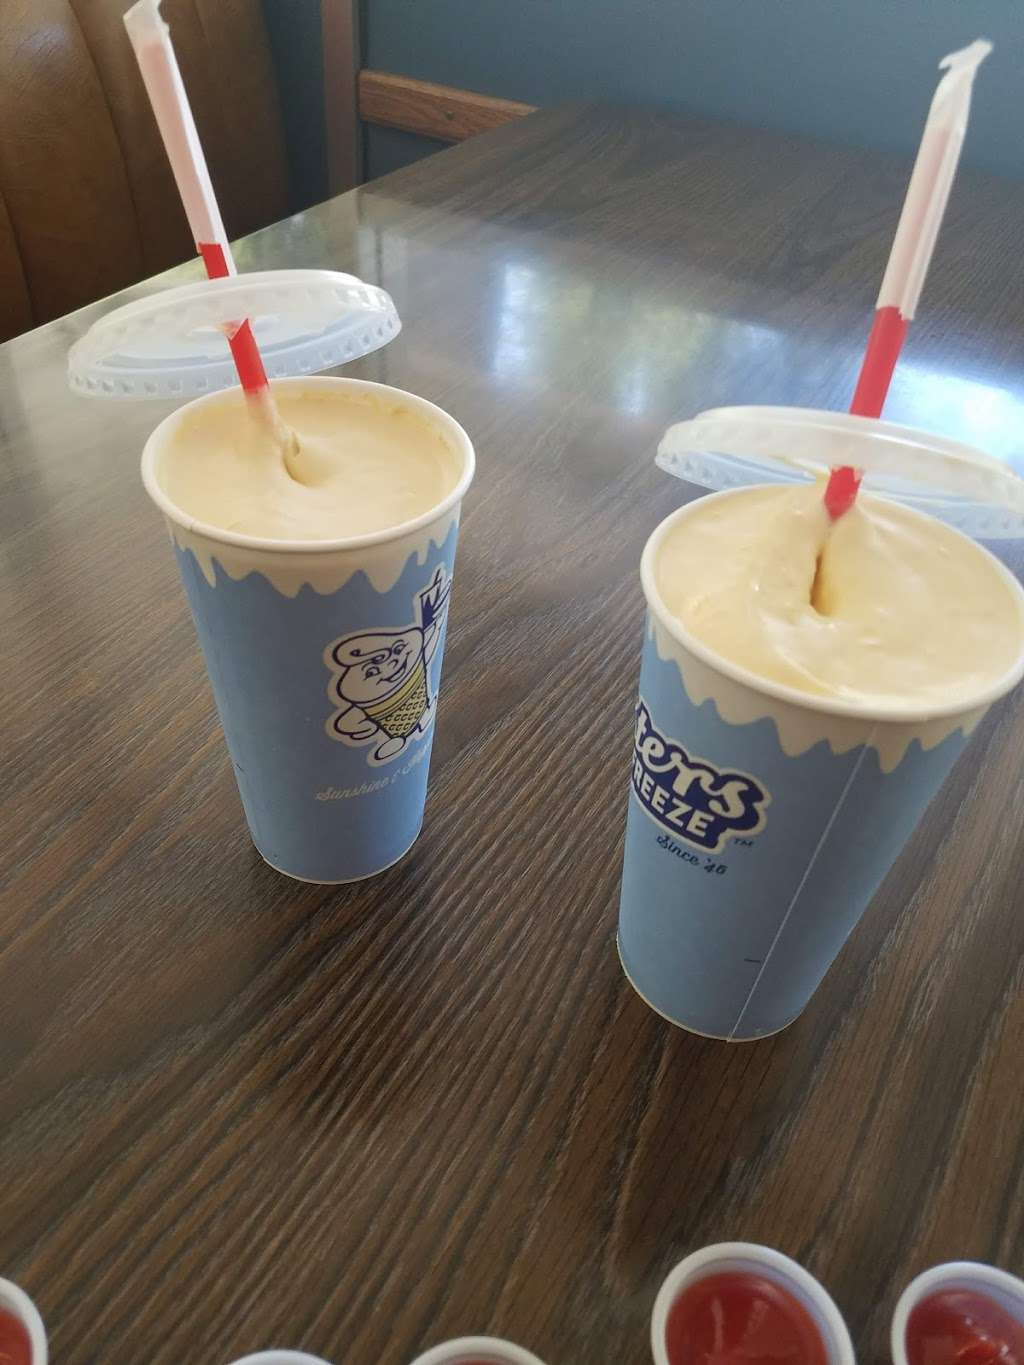 Fosters Freeze - store  | Photo 10 of 10 | Address: 110 Mountain St, Boulder Creek, CA 95006, USA | Phone: (831) 338-3022